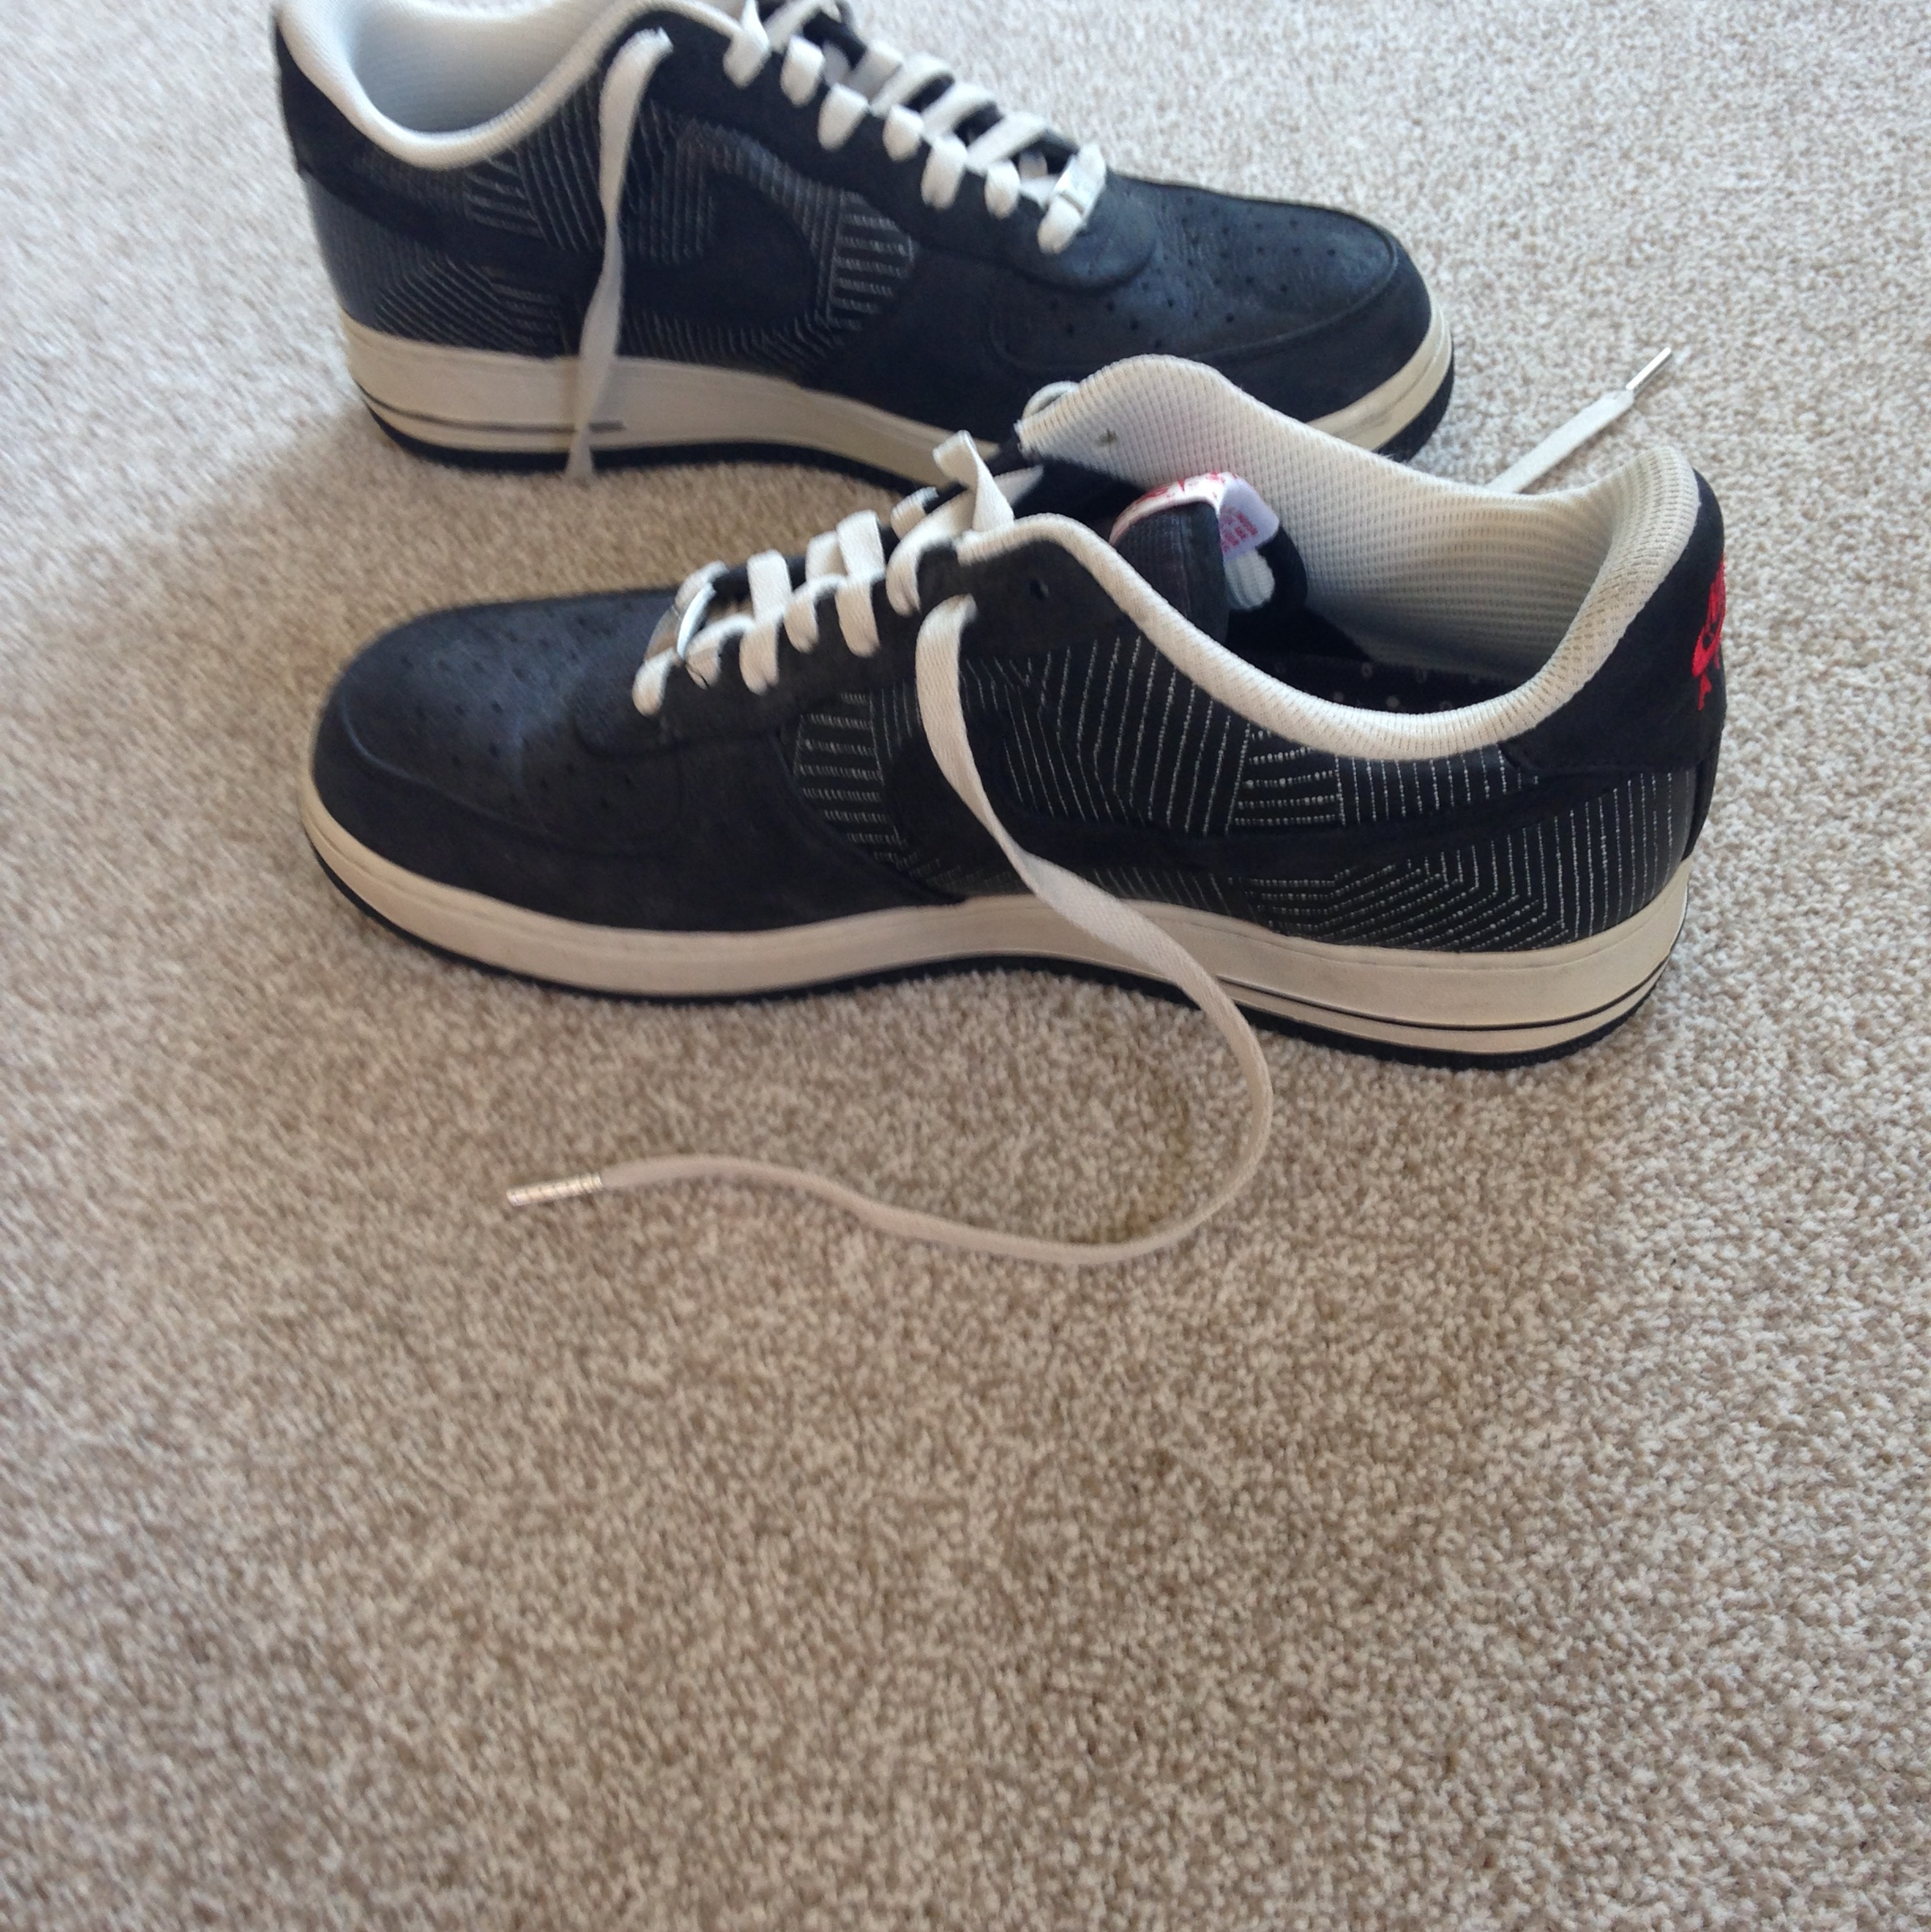 Nike Air Force 1 Black White Red Partly Suede These Depop